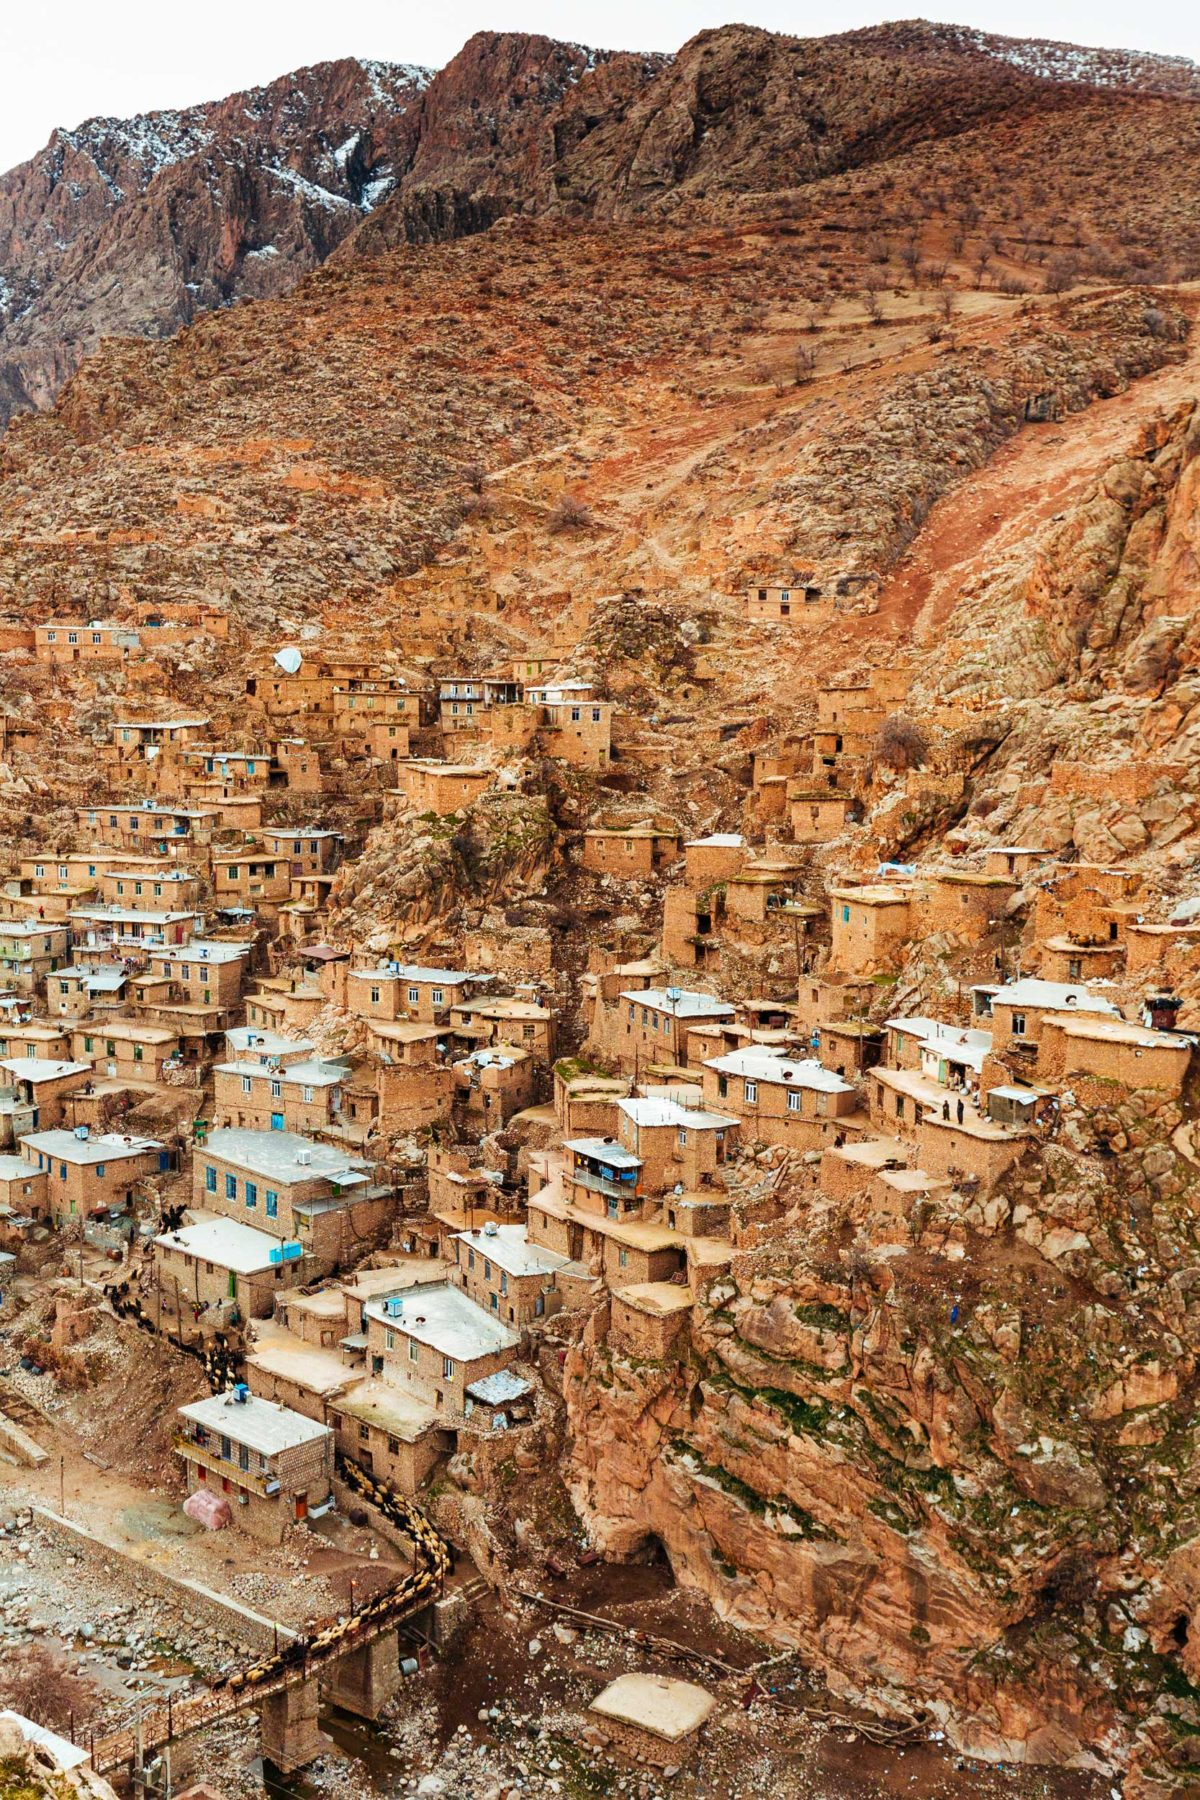 Ancient houses of stone and brick built onto a hillside on Iran